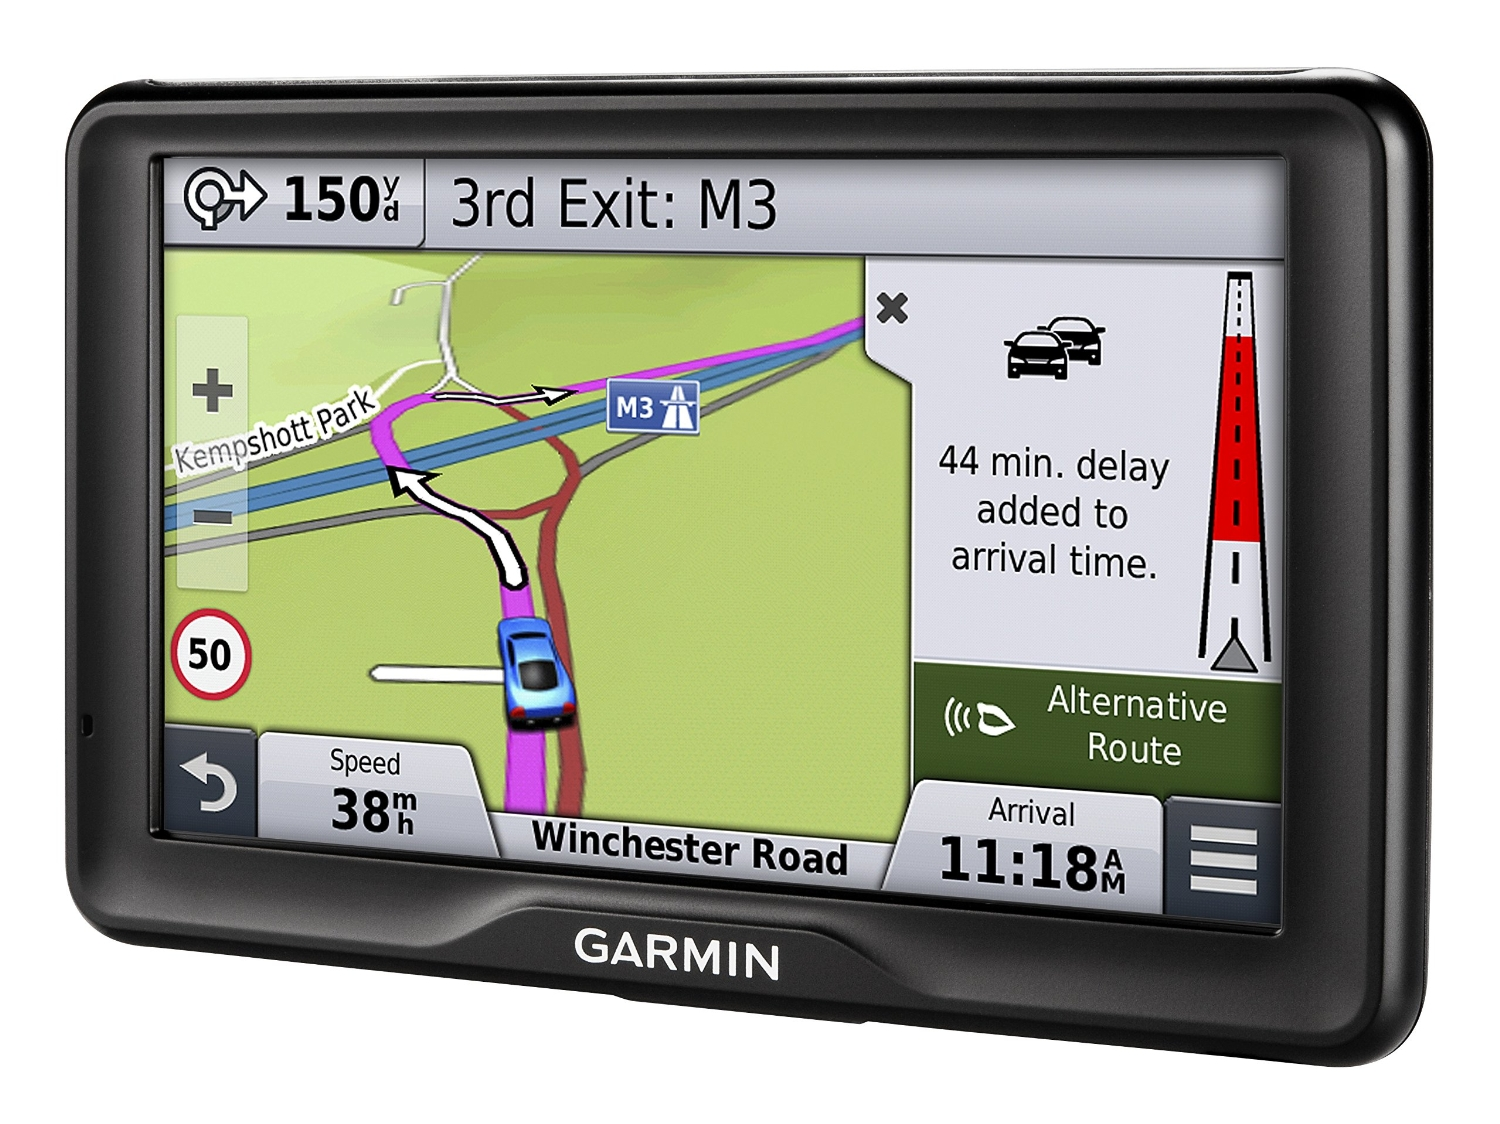 Different Voices for a Garmin Nuvi | It Still Works